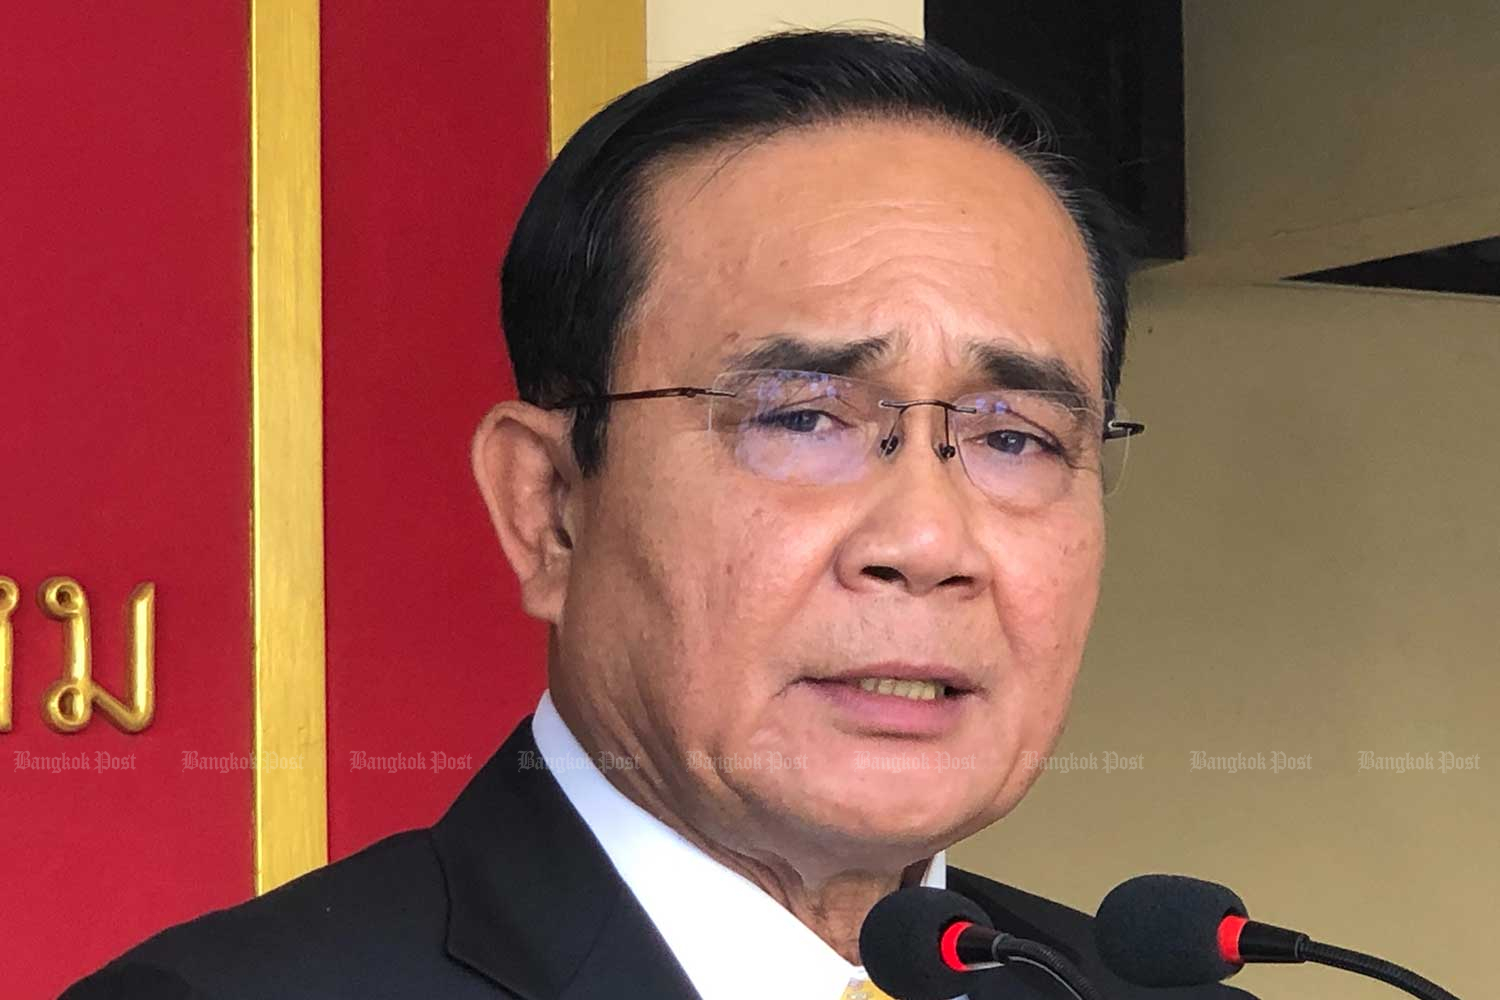 Prime Minister Prayut Chan-o-cha accuses Future Forward leader Thanathorn Juangroongruangkit for allegedly running the